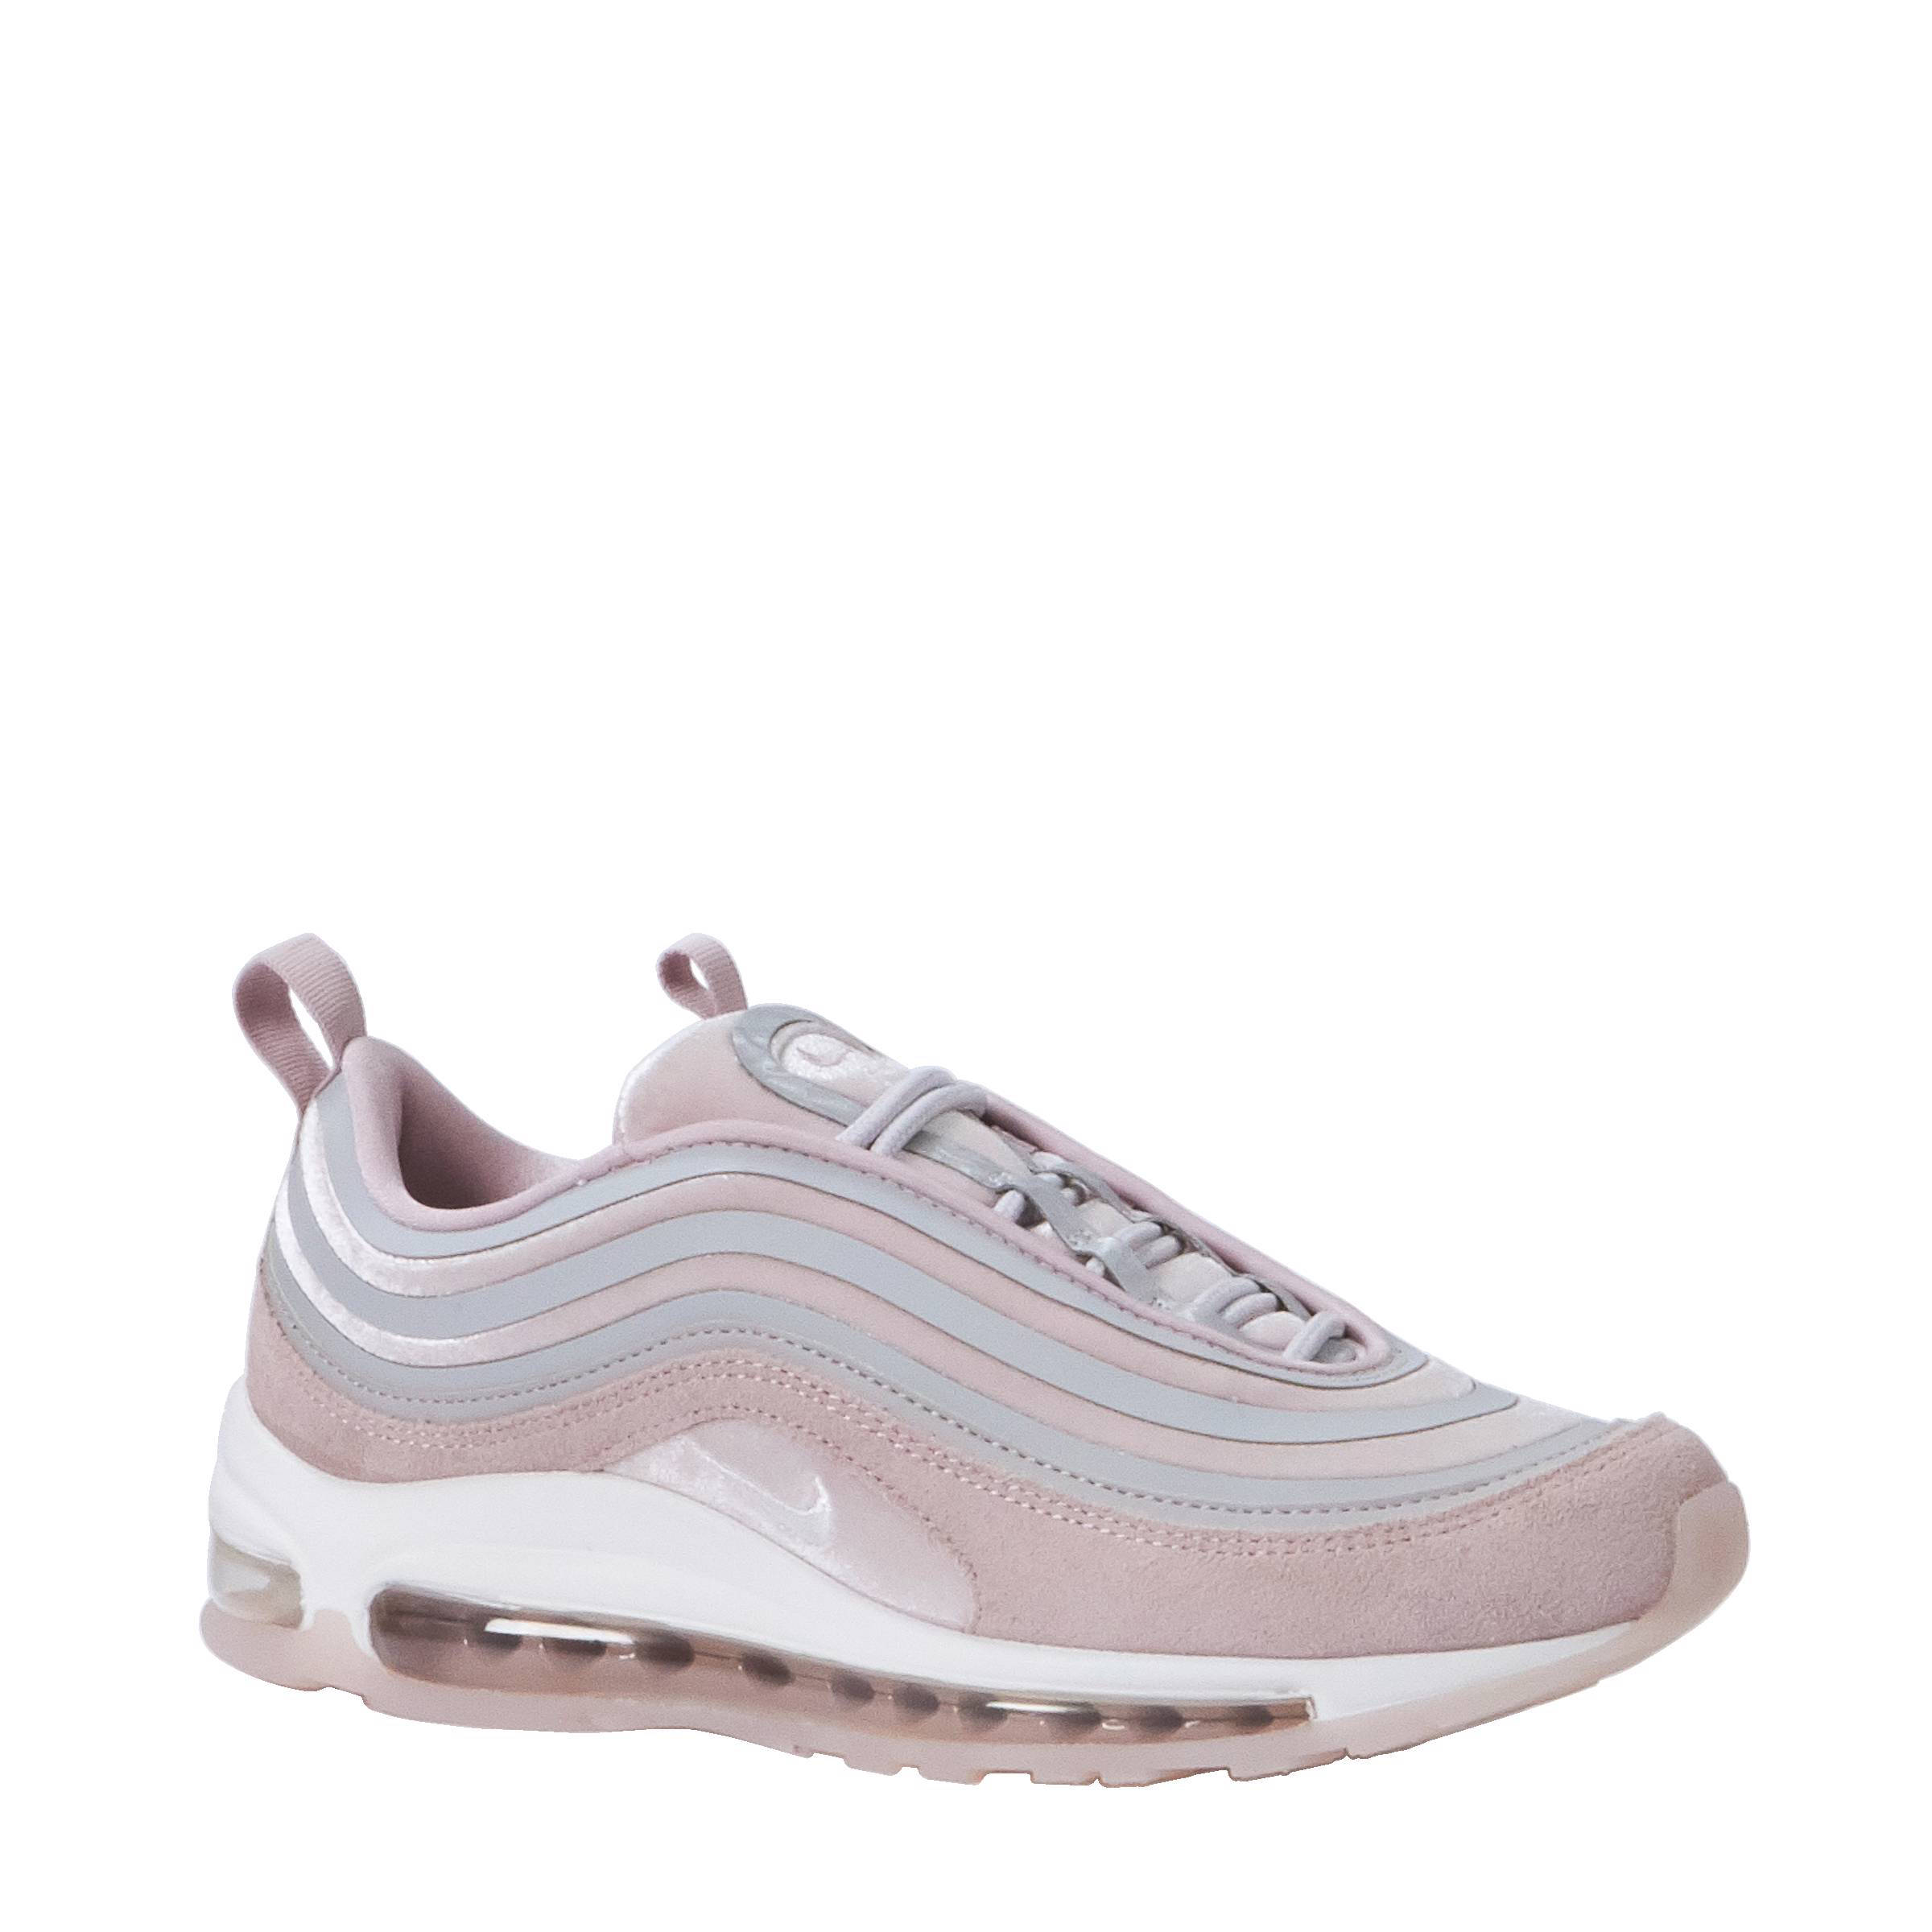 nike air max 97 ultra dames white